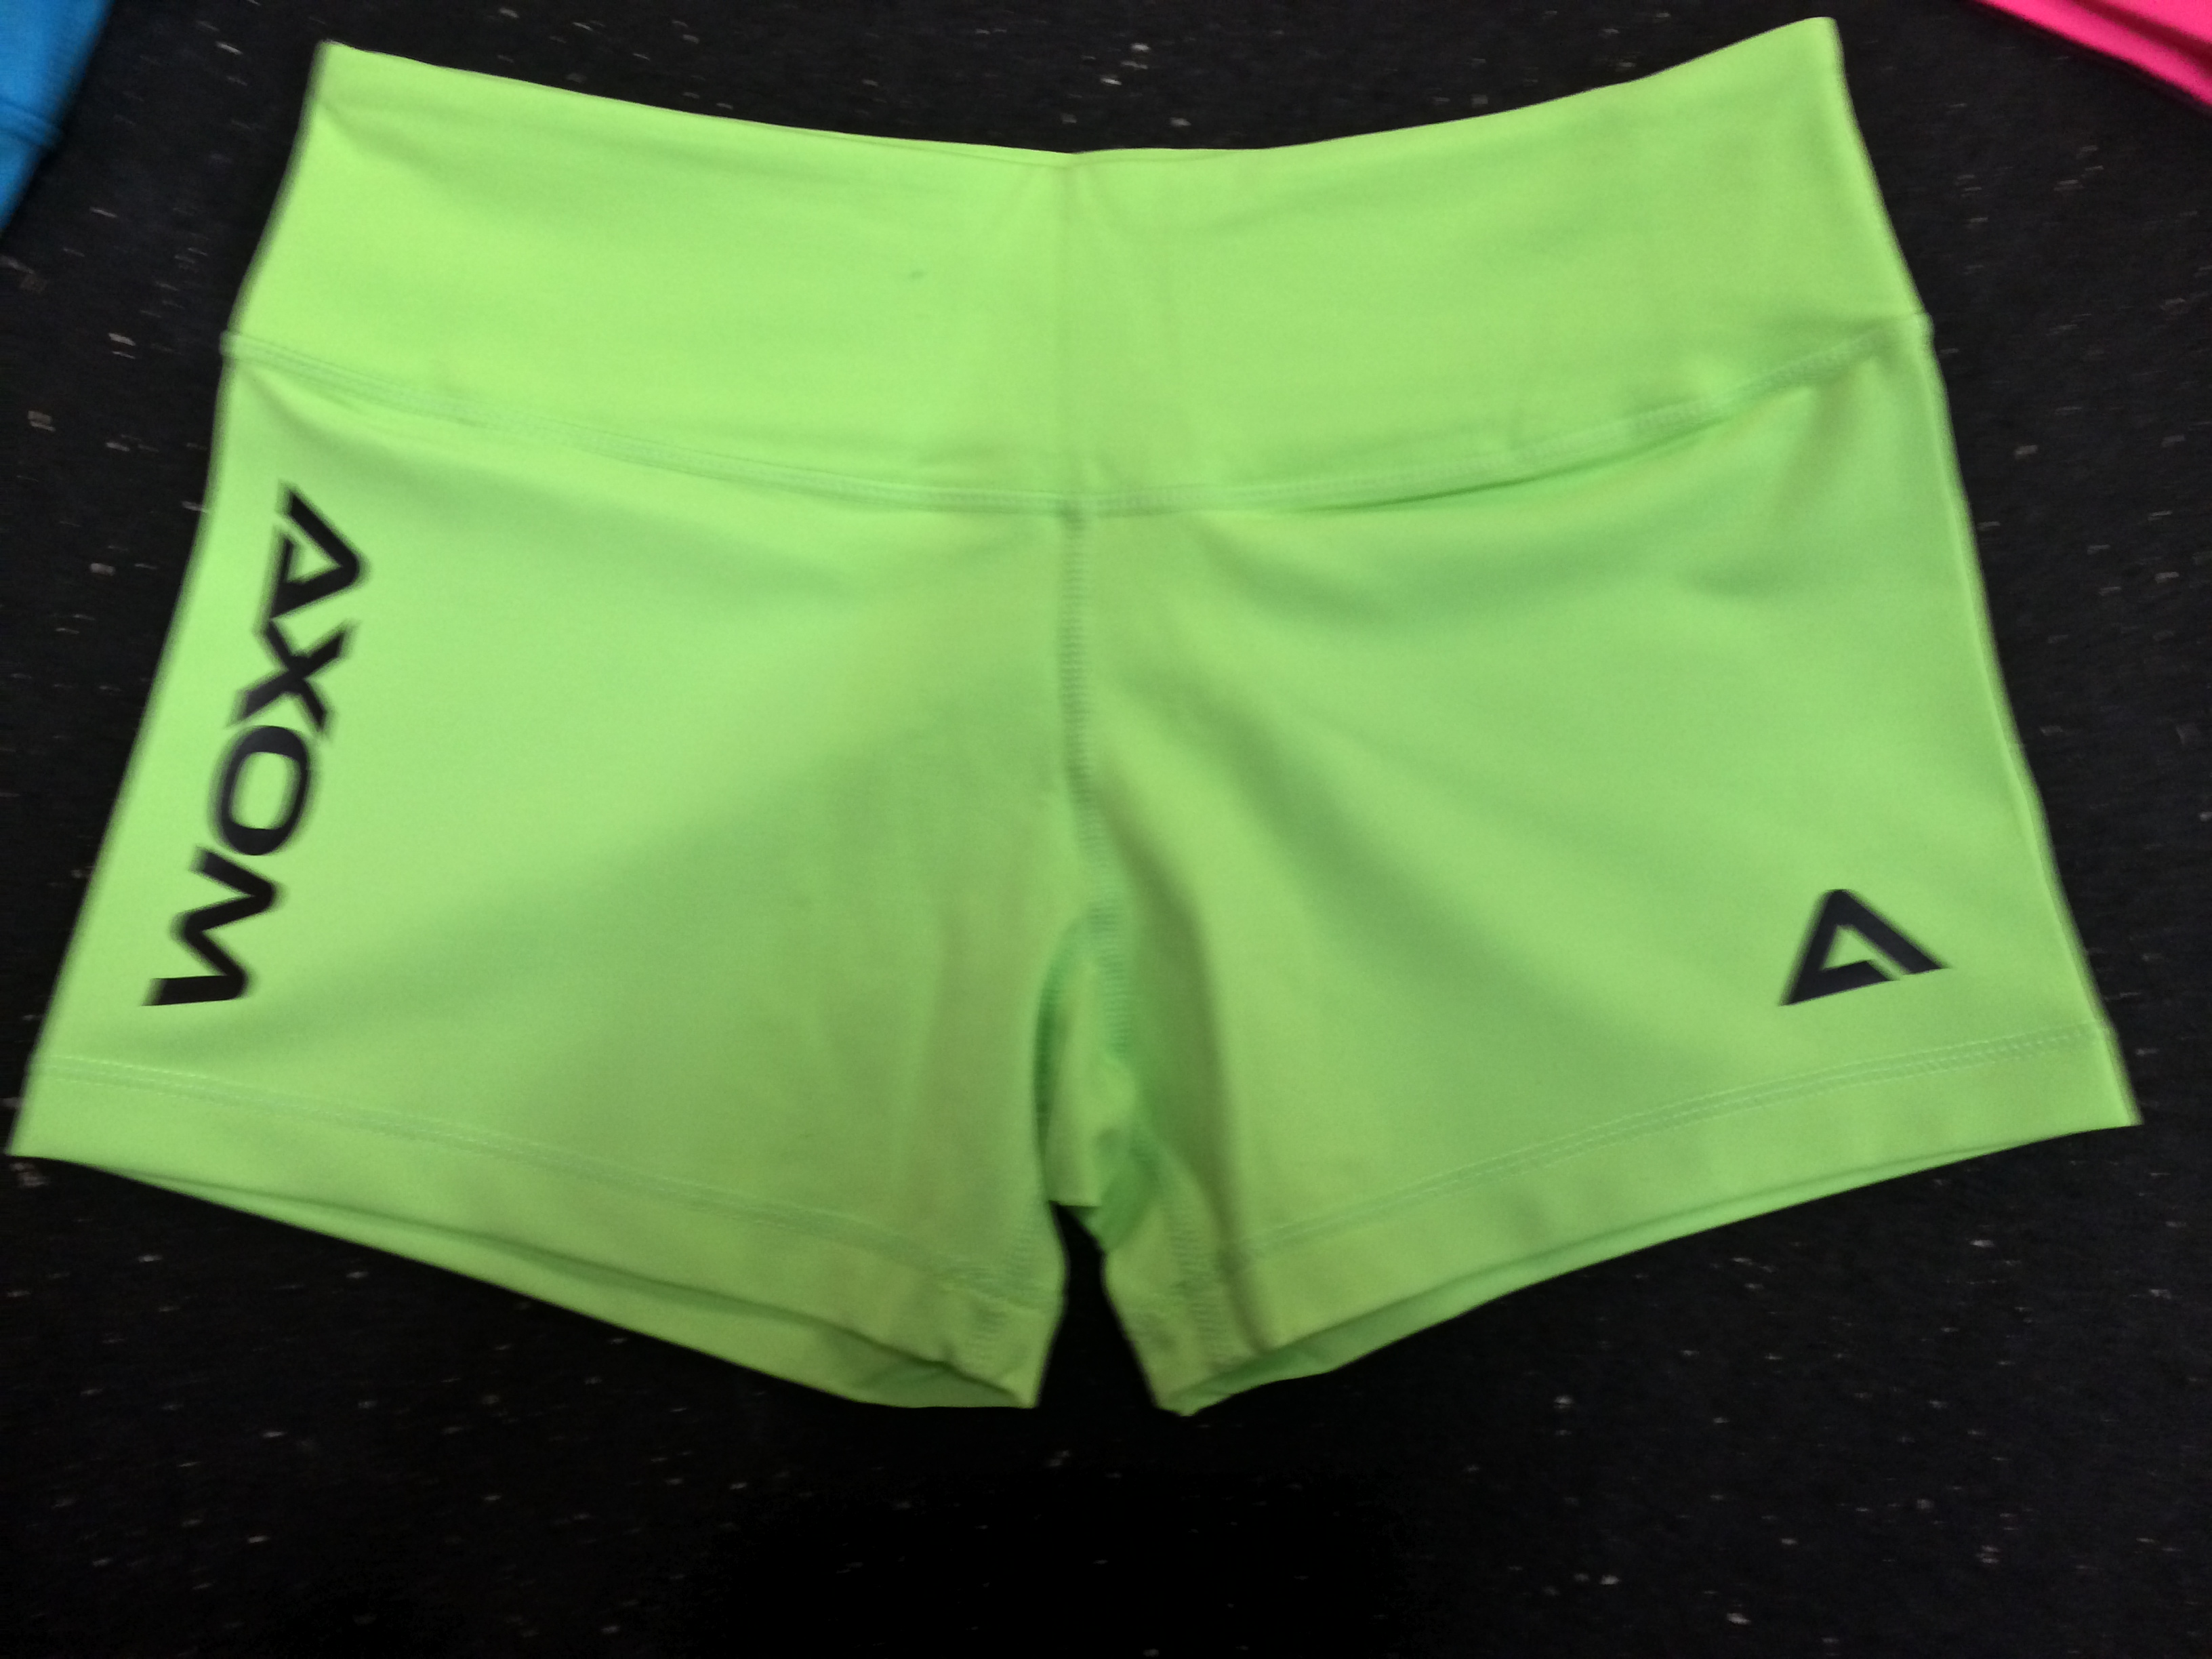 WOD SHORTS from Axom Performacne